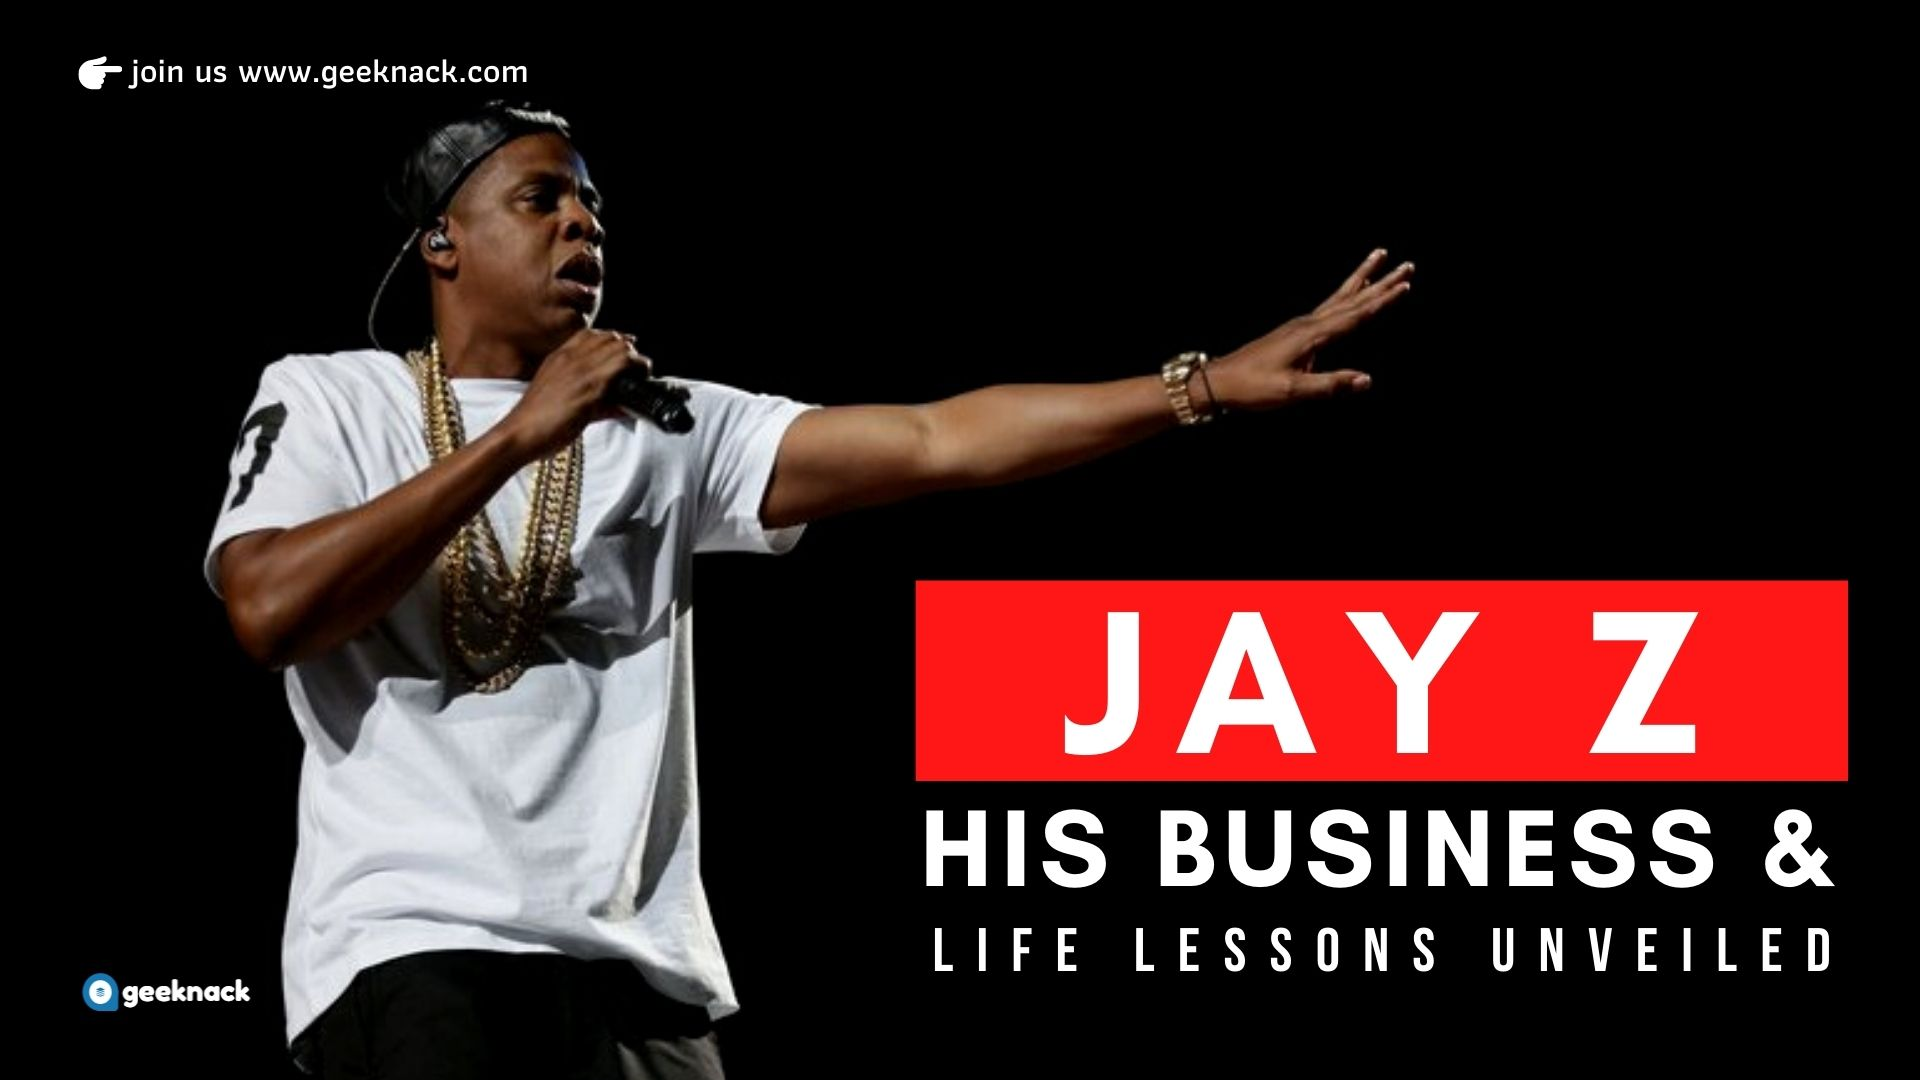 Jay Z - His Business & Life Lessons Unveiled